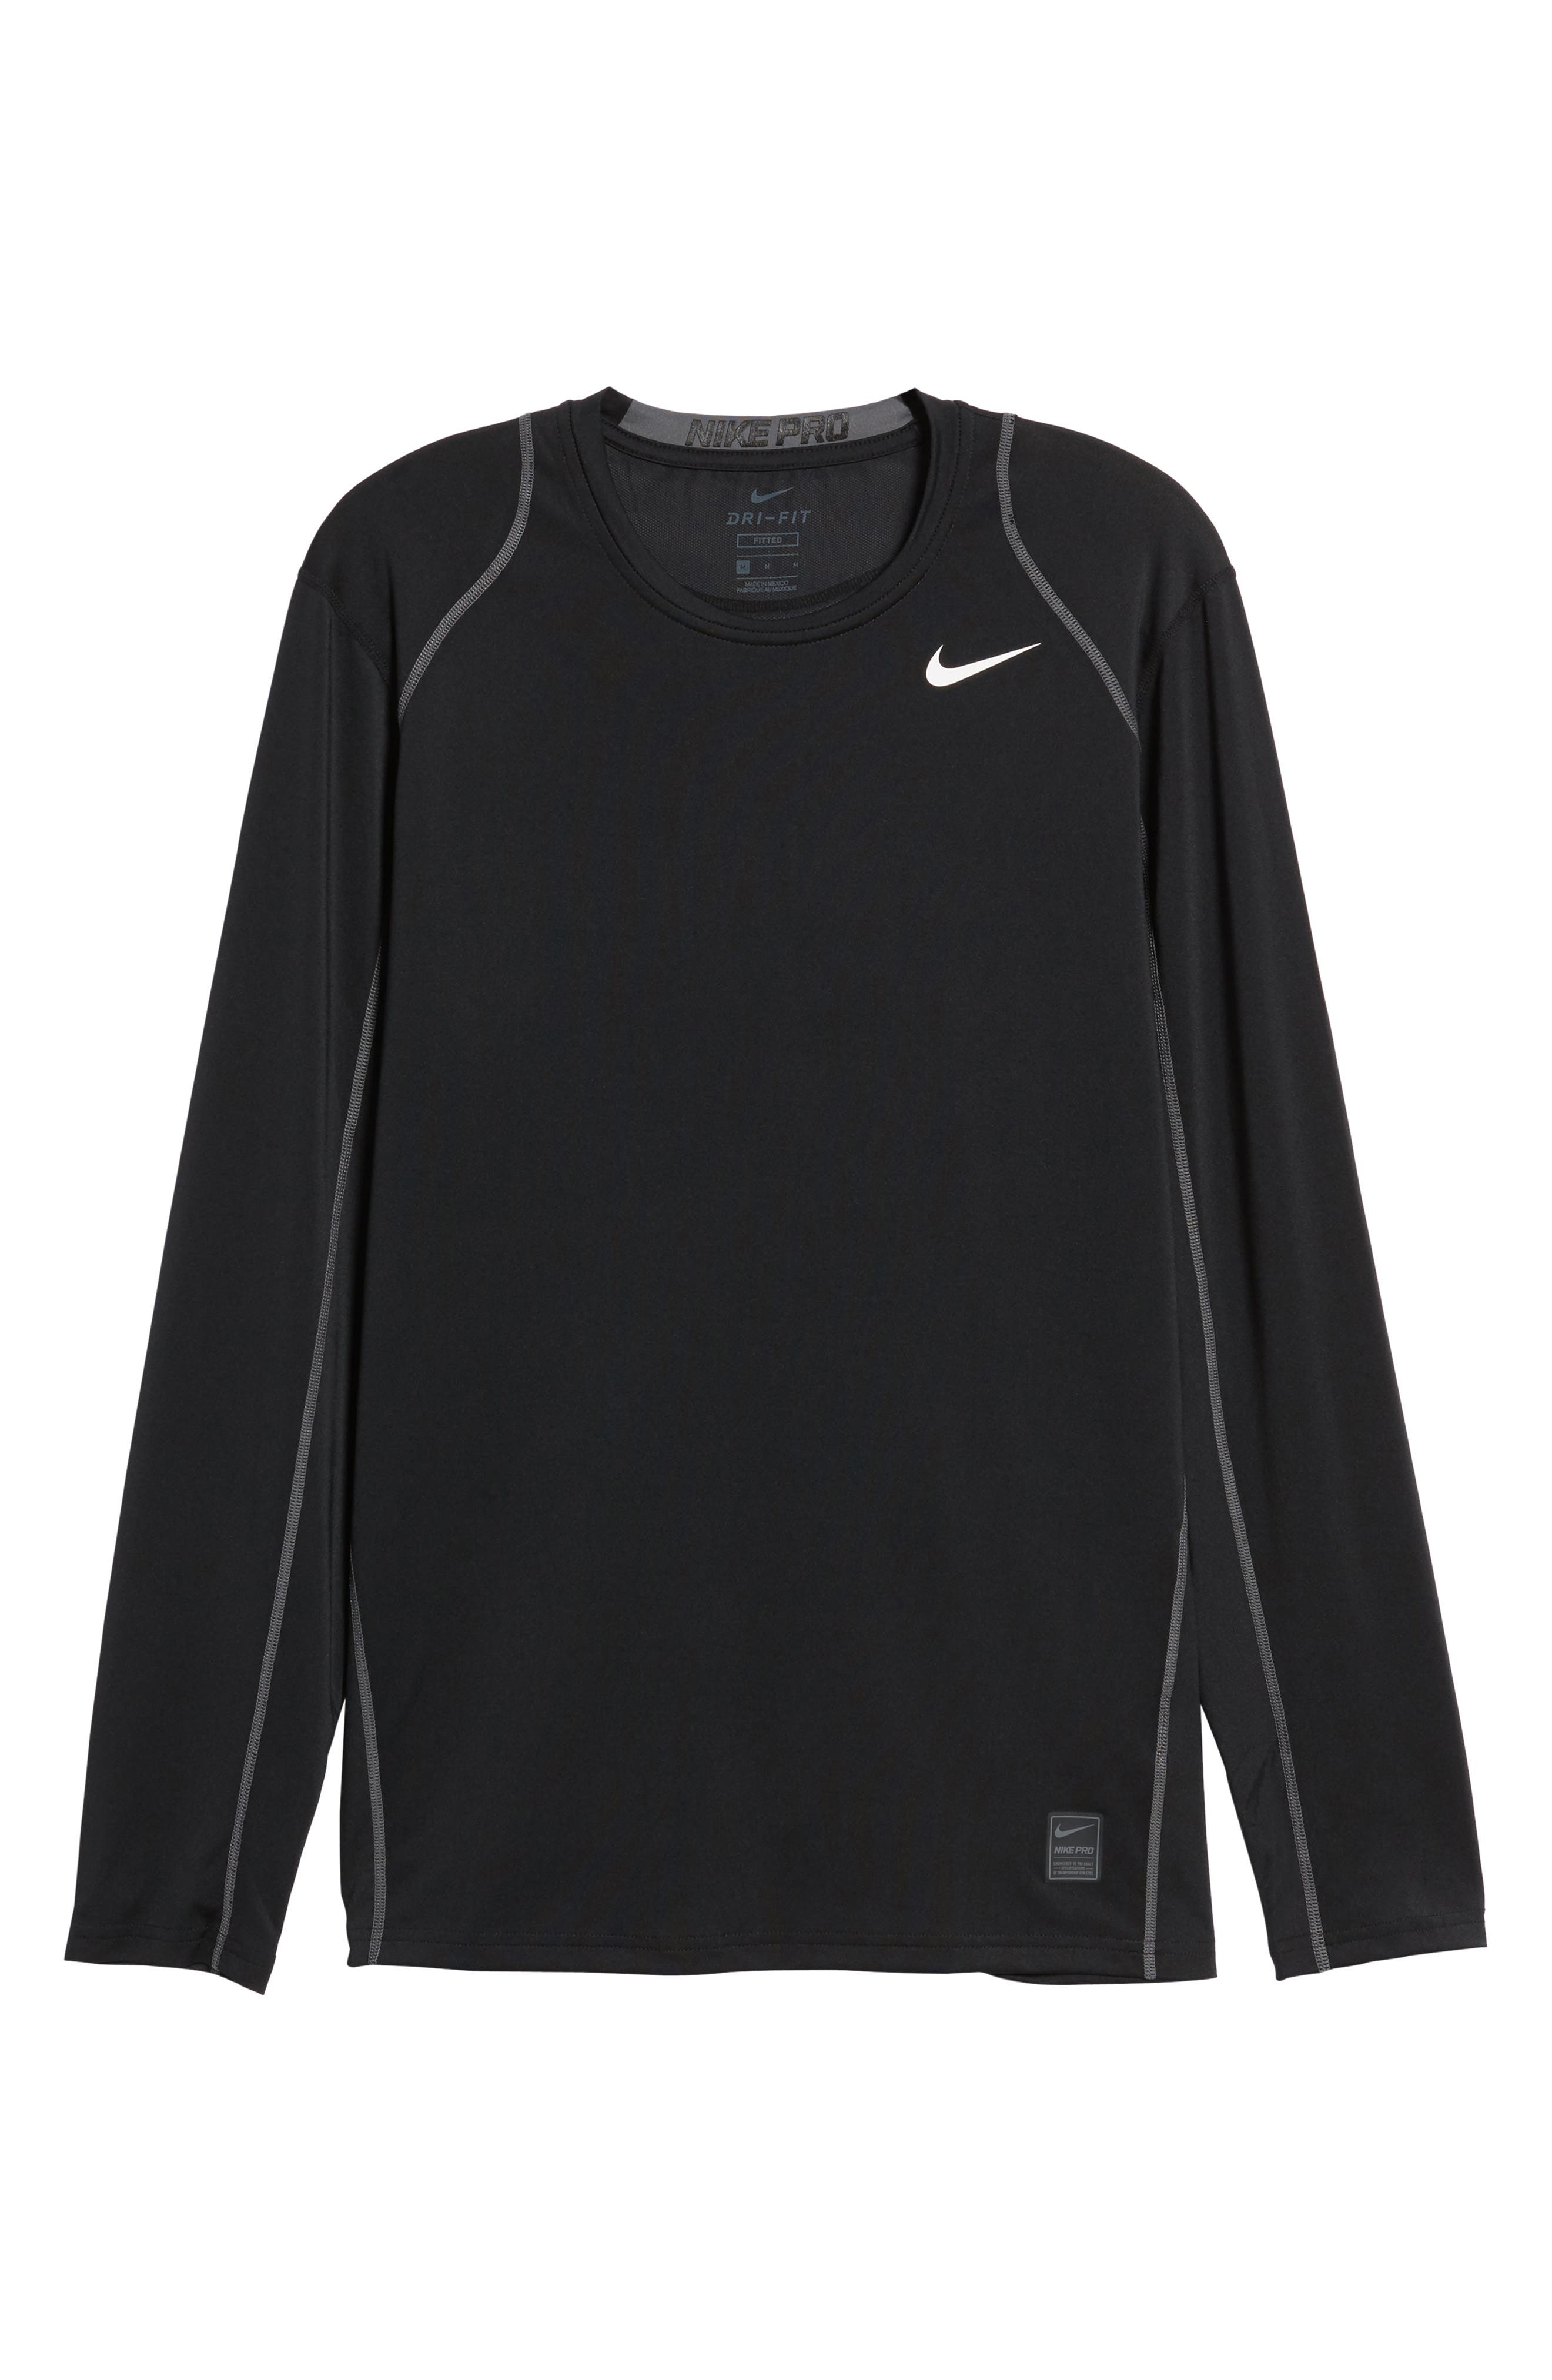 'Pro Coo' Fitted Long Sleeve Dri-FIT T-Shirt,                             Alternate thumbnail 2, color,                             010